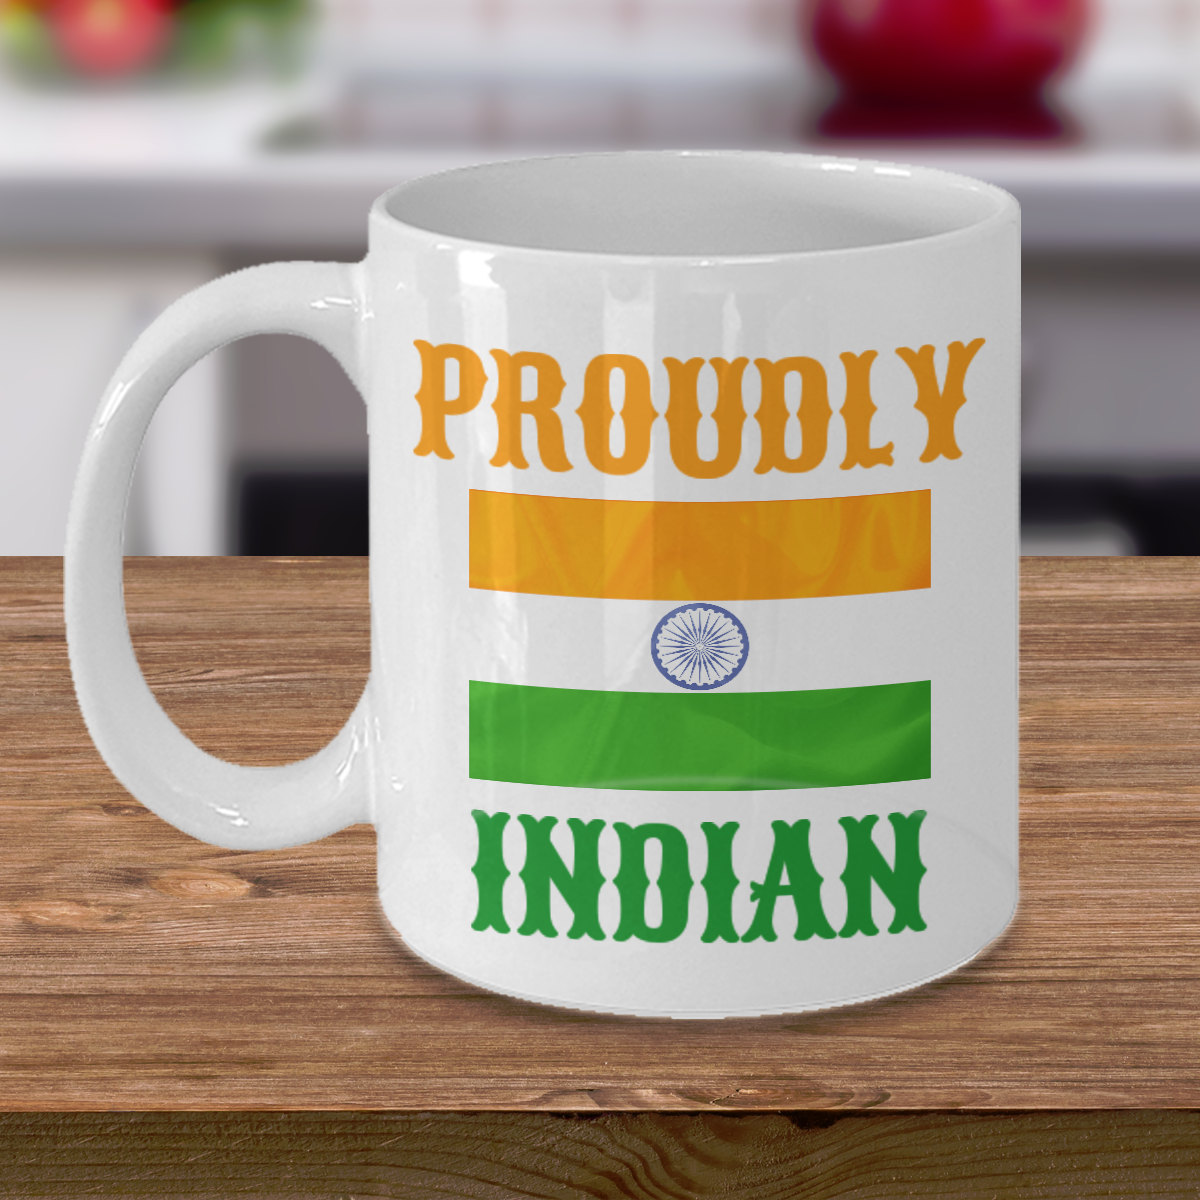 Il Fullxfull1167418239 Ft7x Proudly Indian Personalized Mug Birthday Gift For Coffee Lover